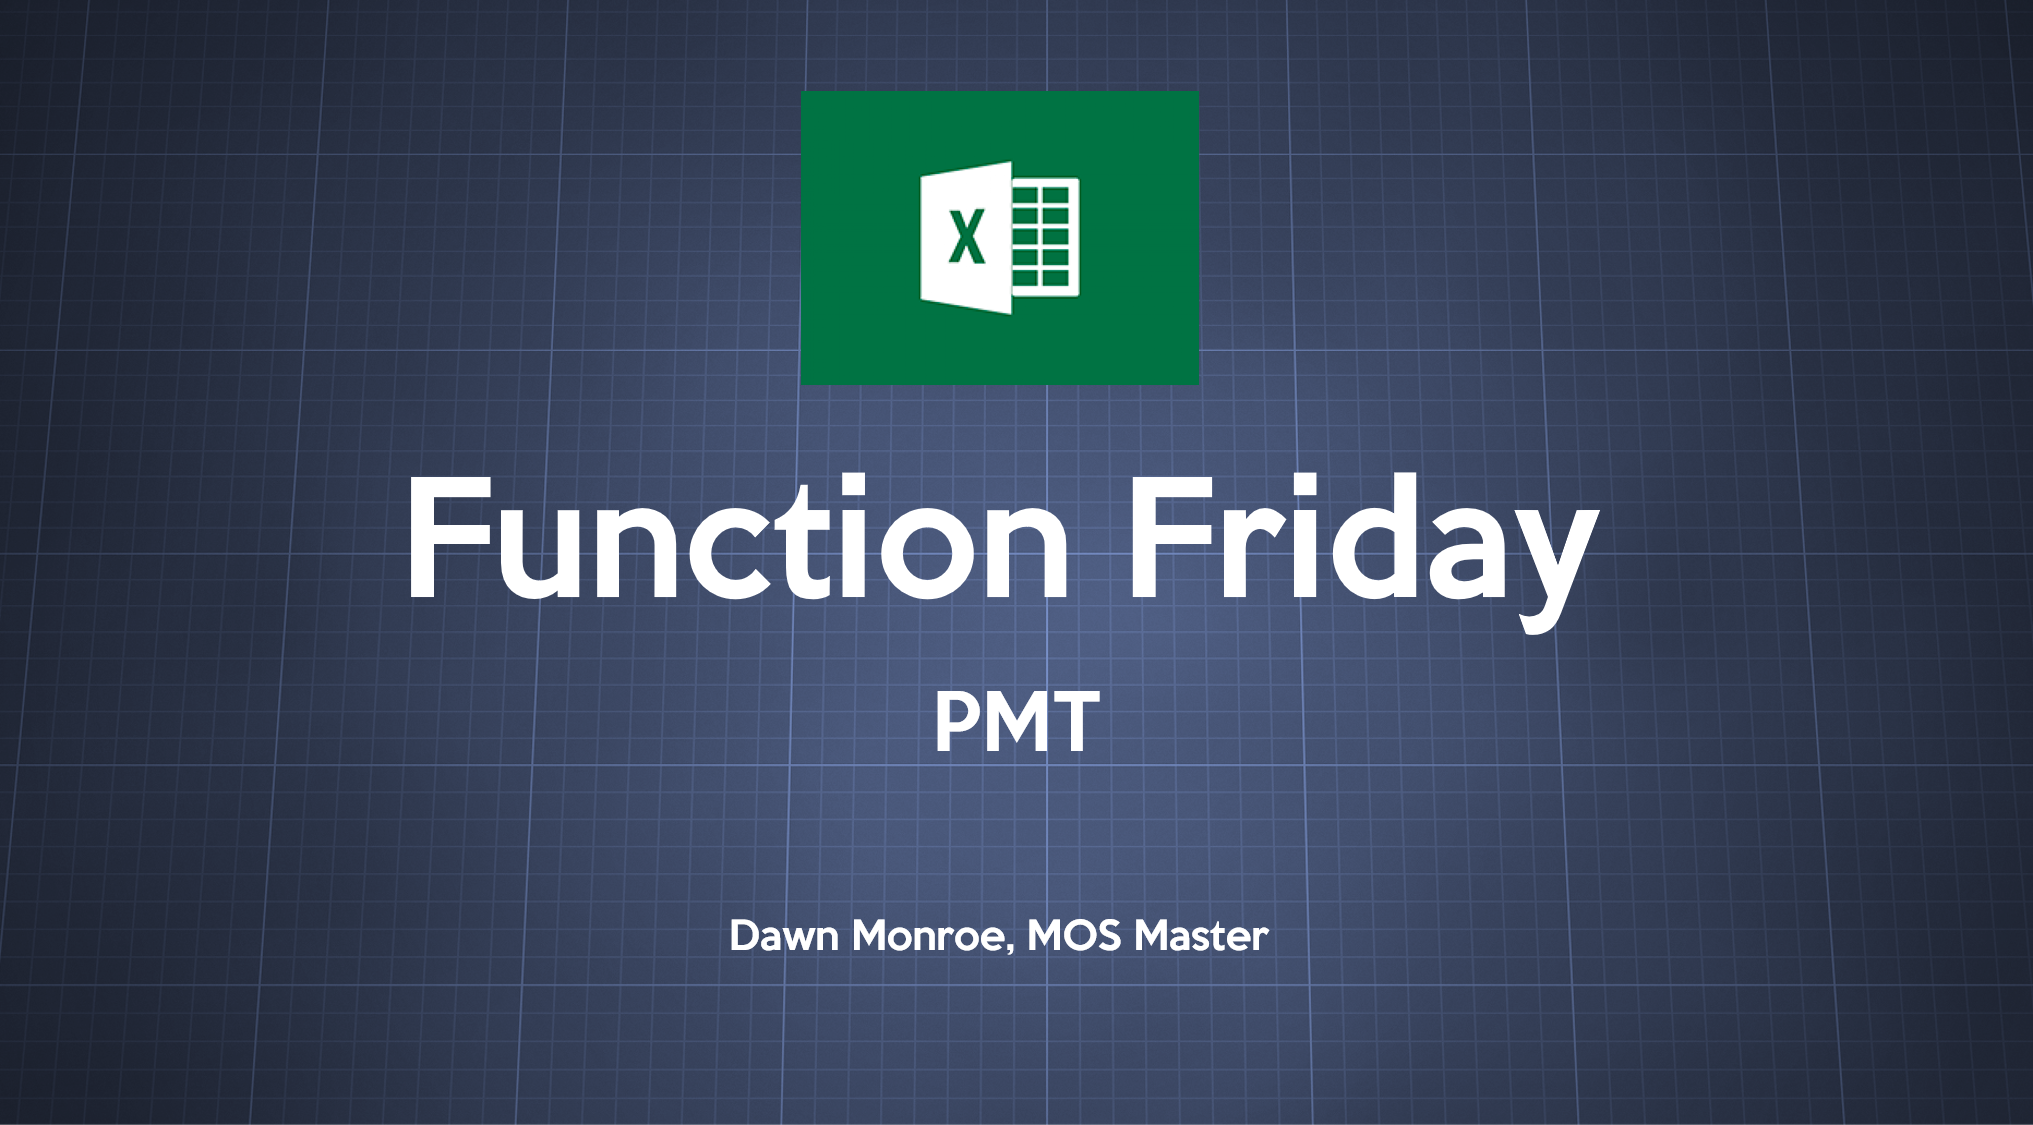 Excel Payment PMT Function